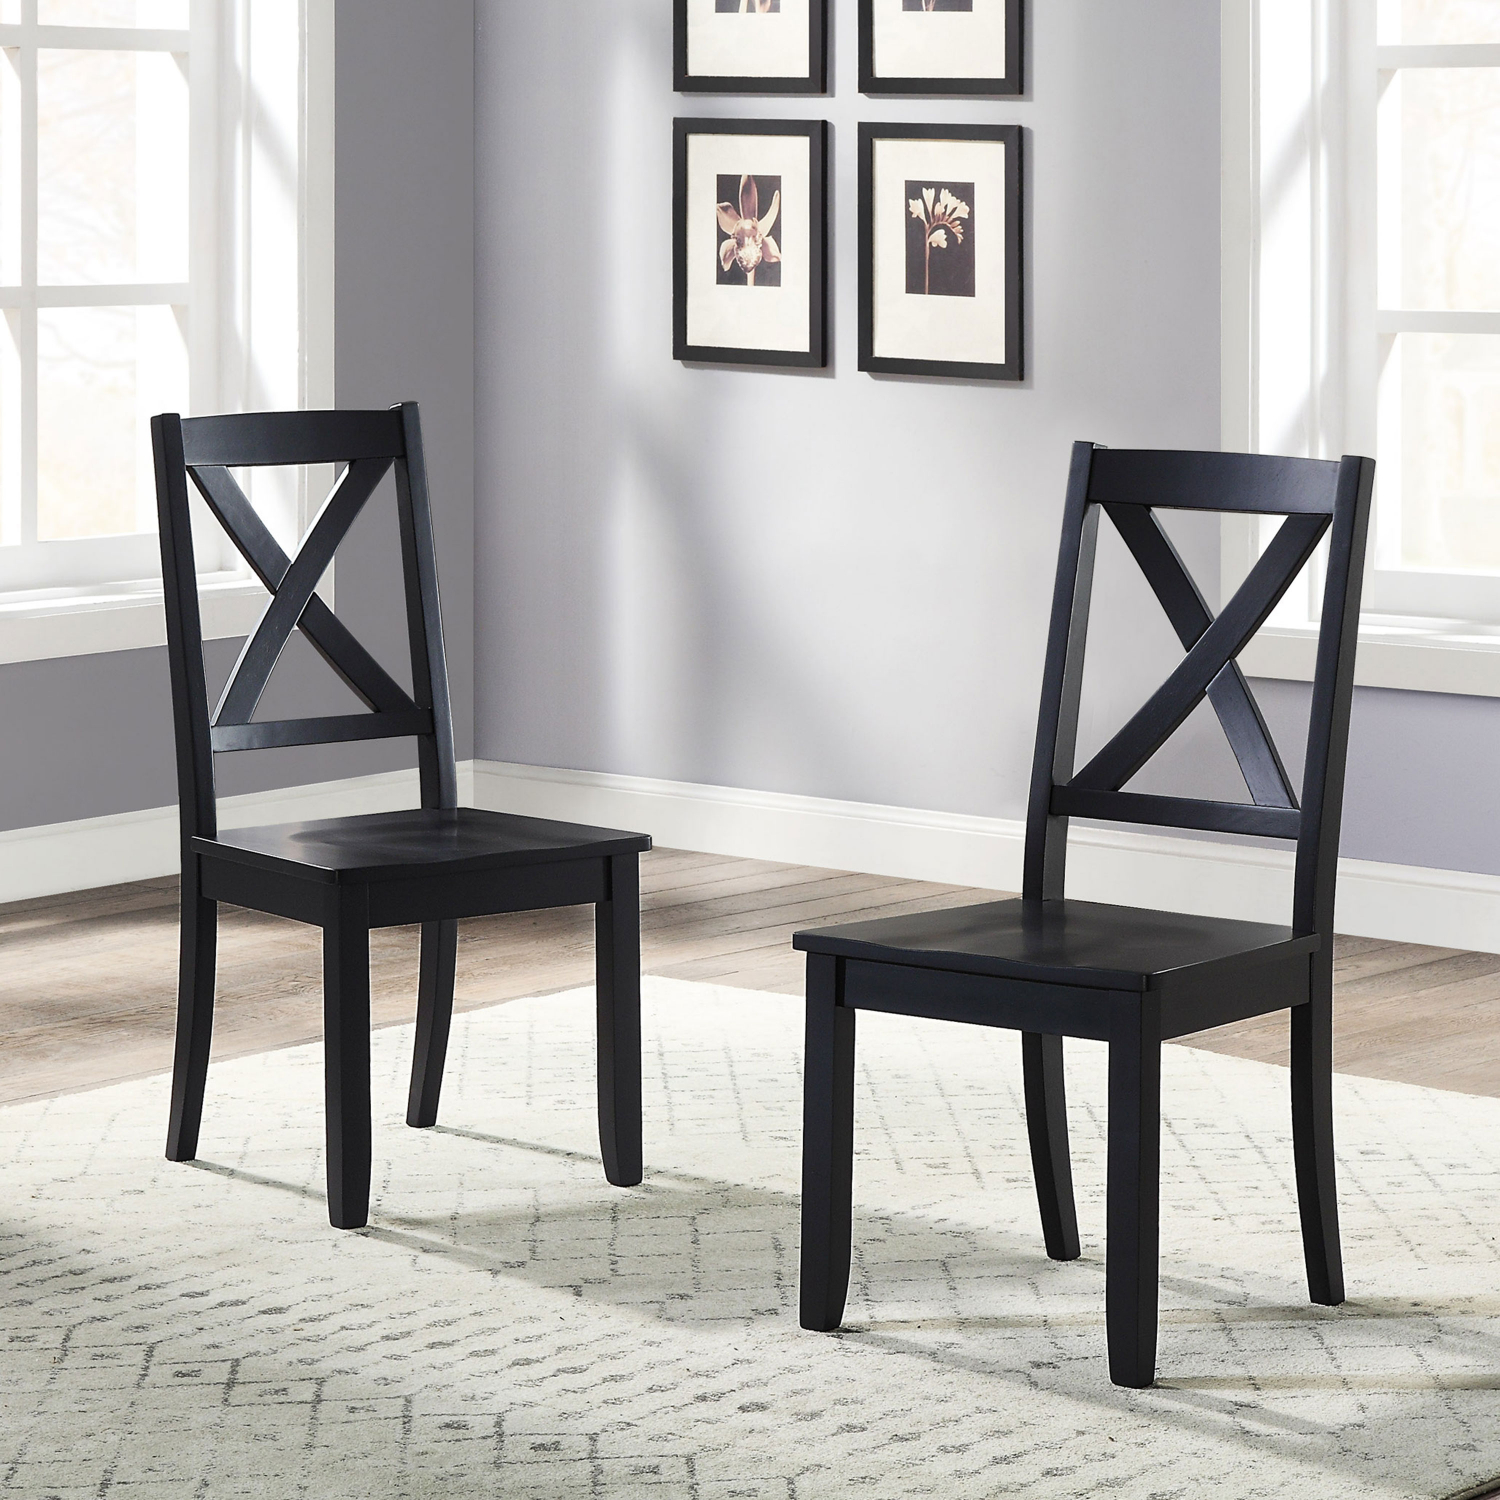 Rustic Dining Room Chairs Farmhouse Kitchen Table Chair Set Of 2